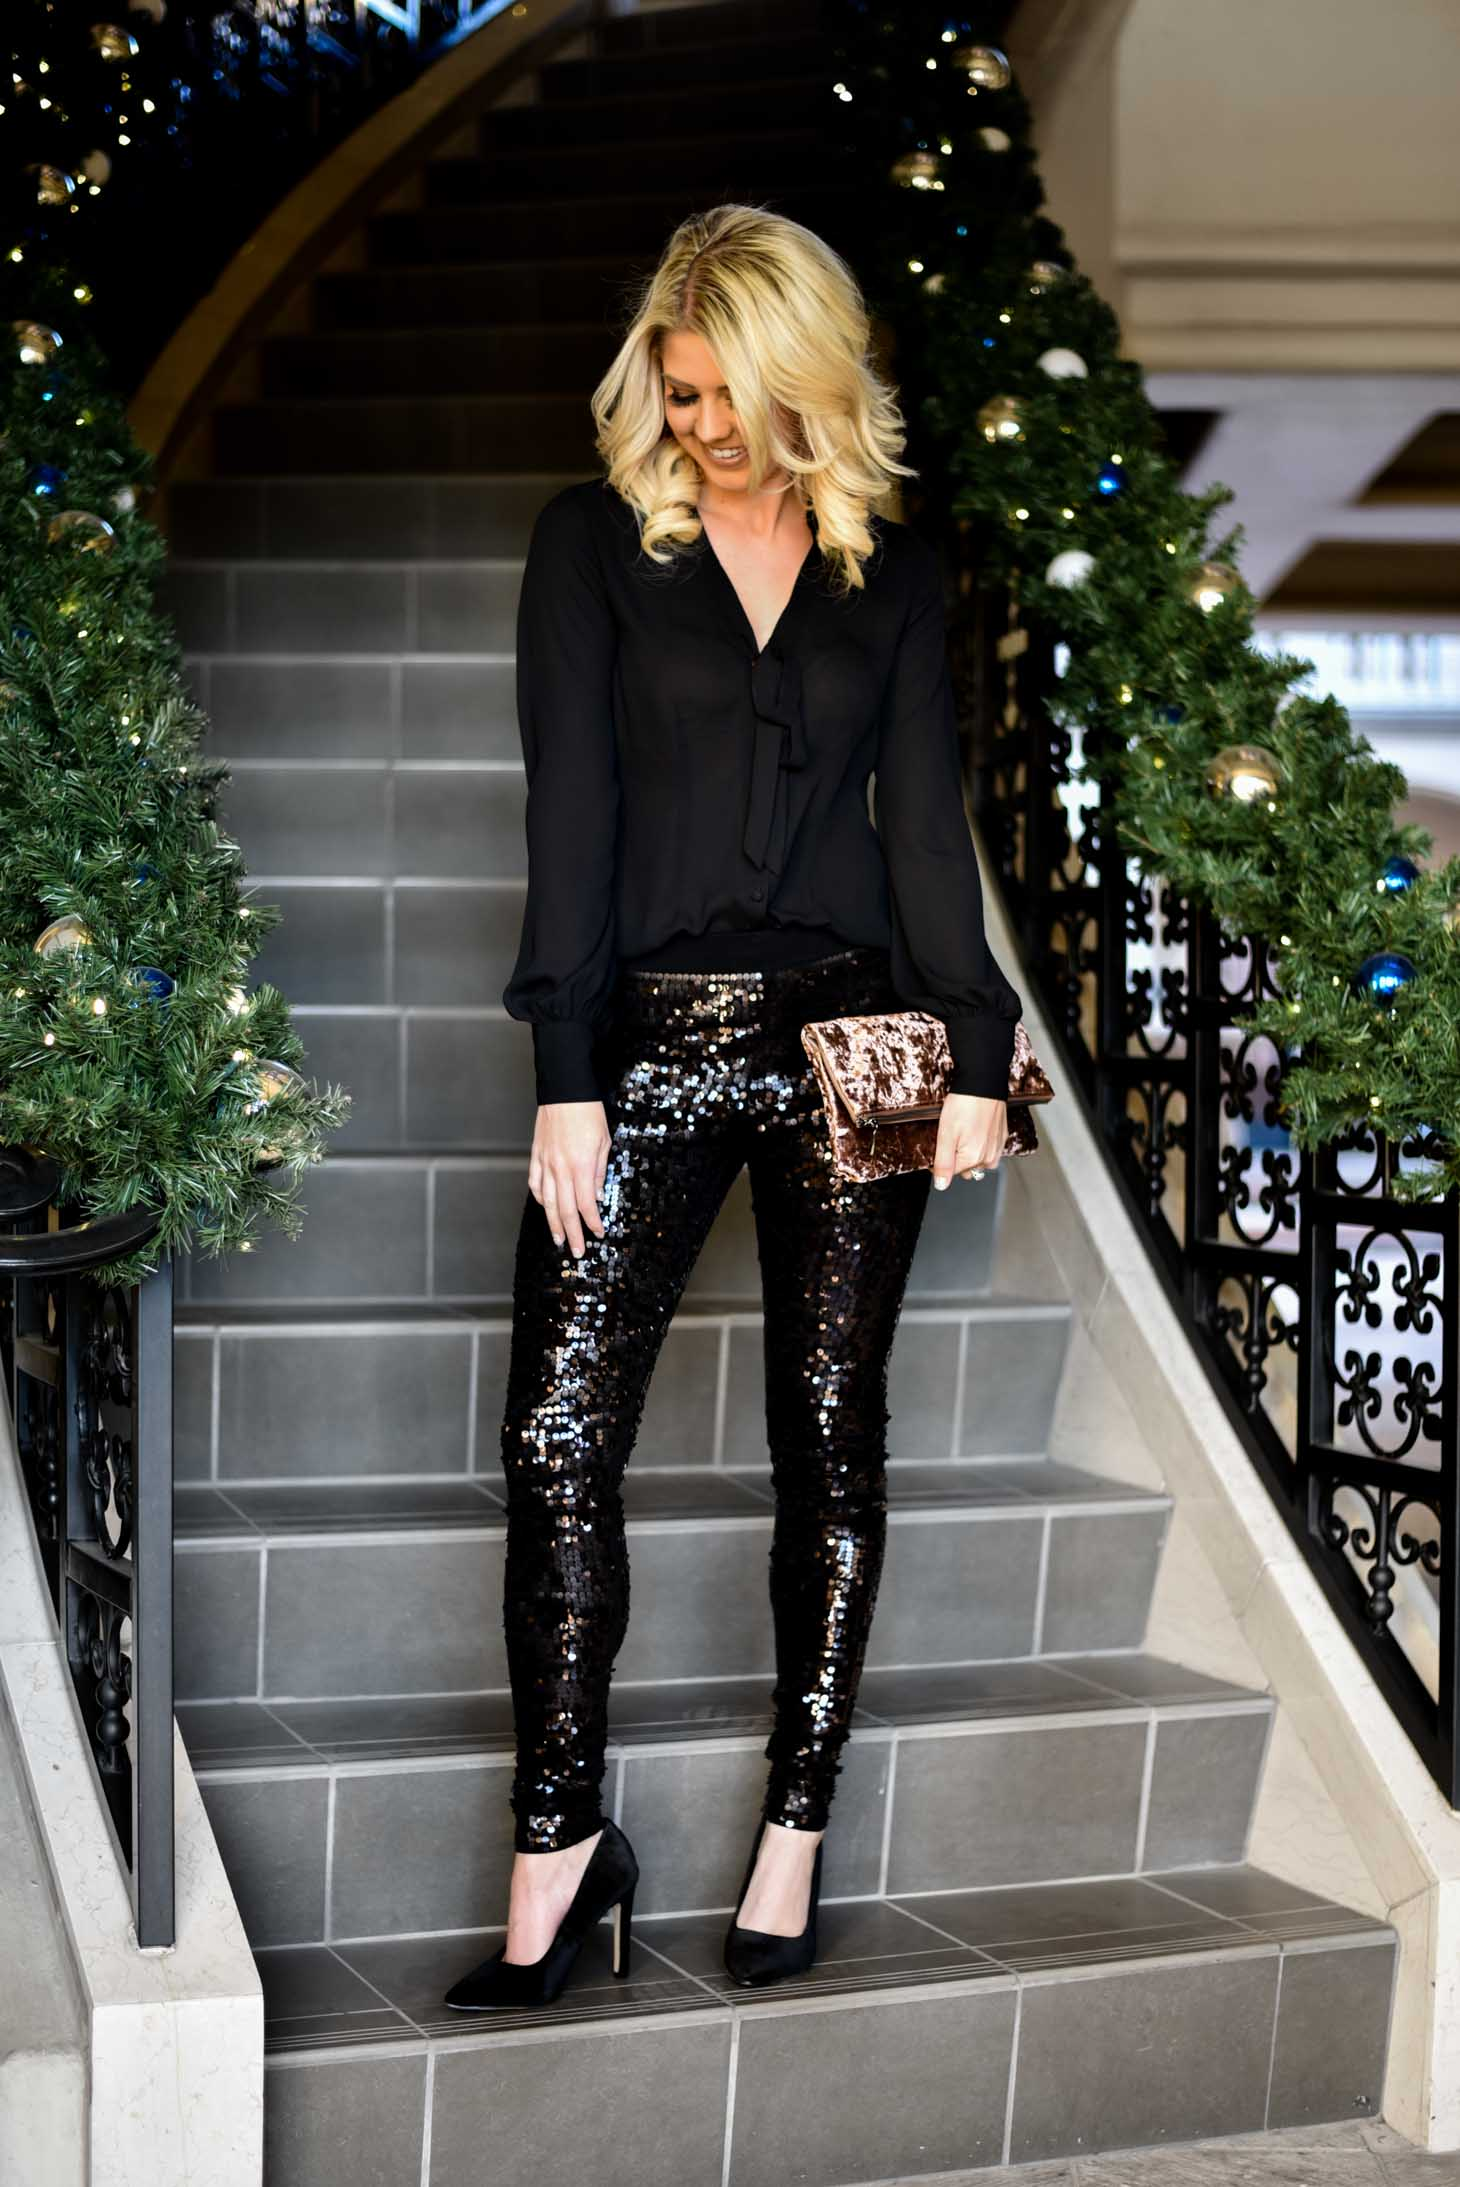 Erin Elizabeth of Wink and a Twirl Holiday Party Look